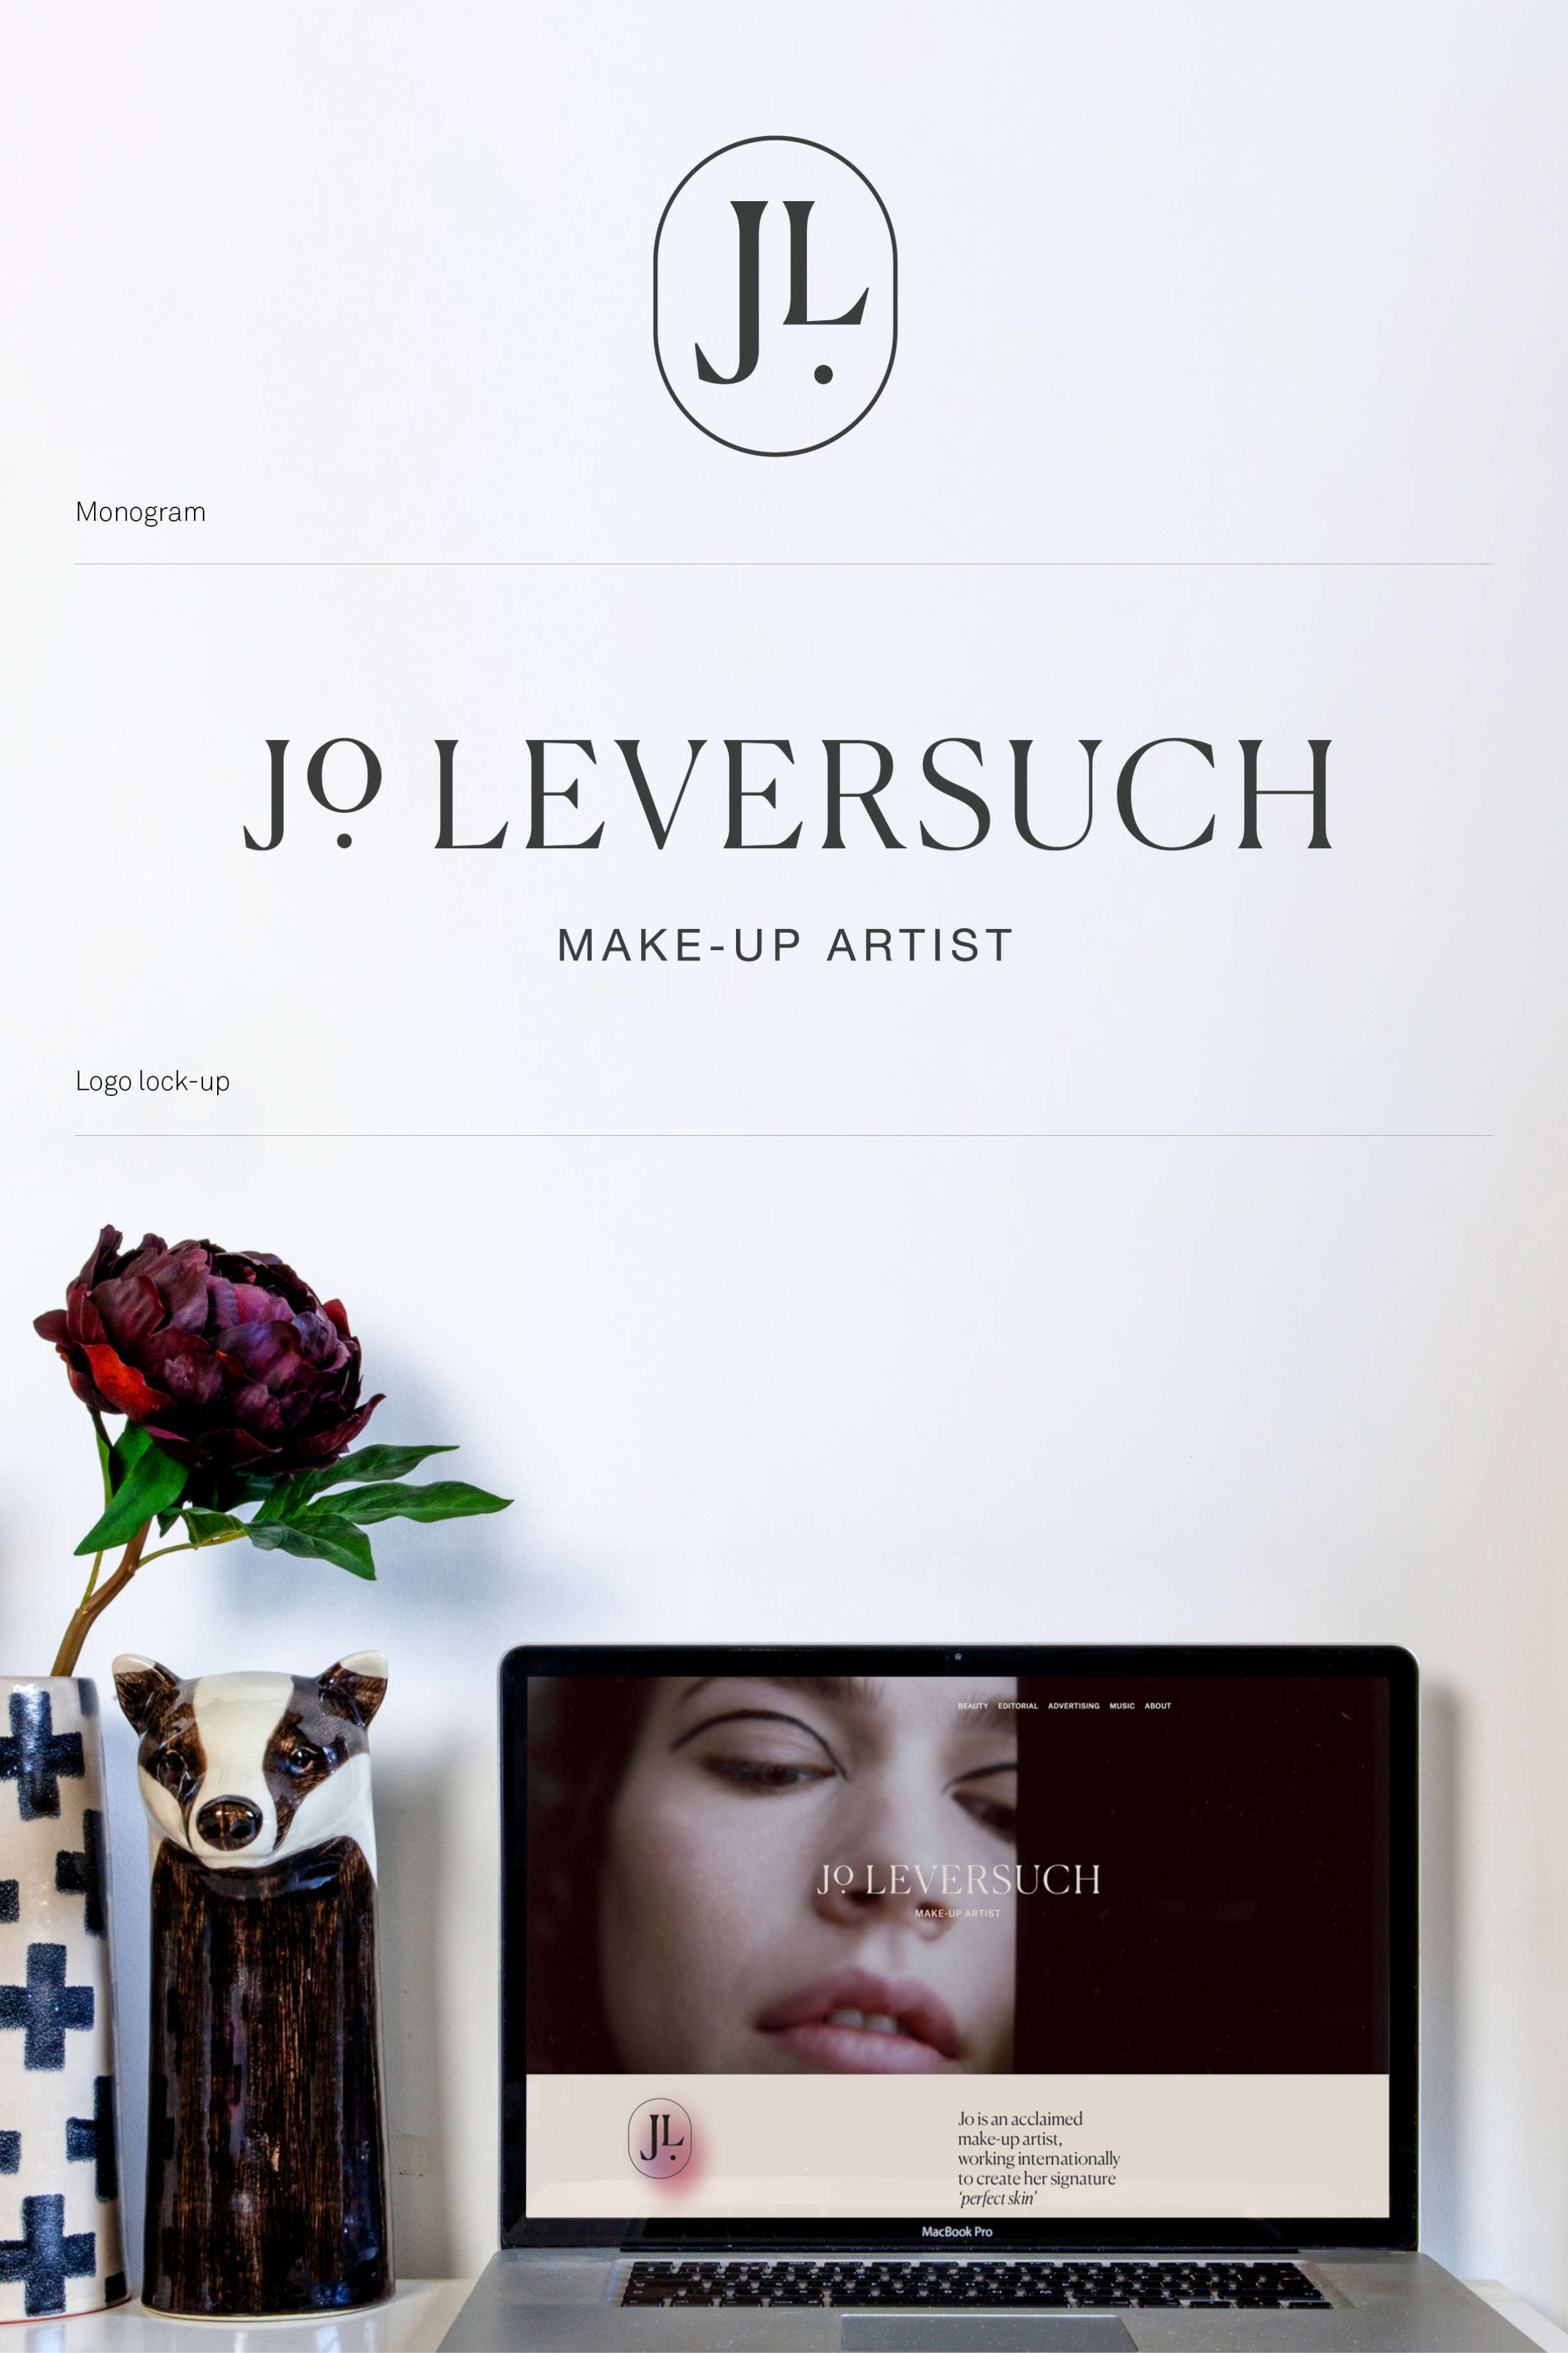 Jo Leversuch Hero slide Anna Cleary4